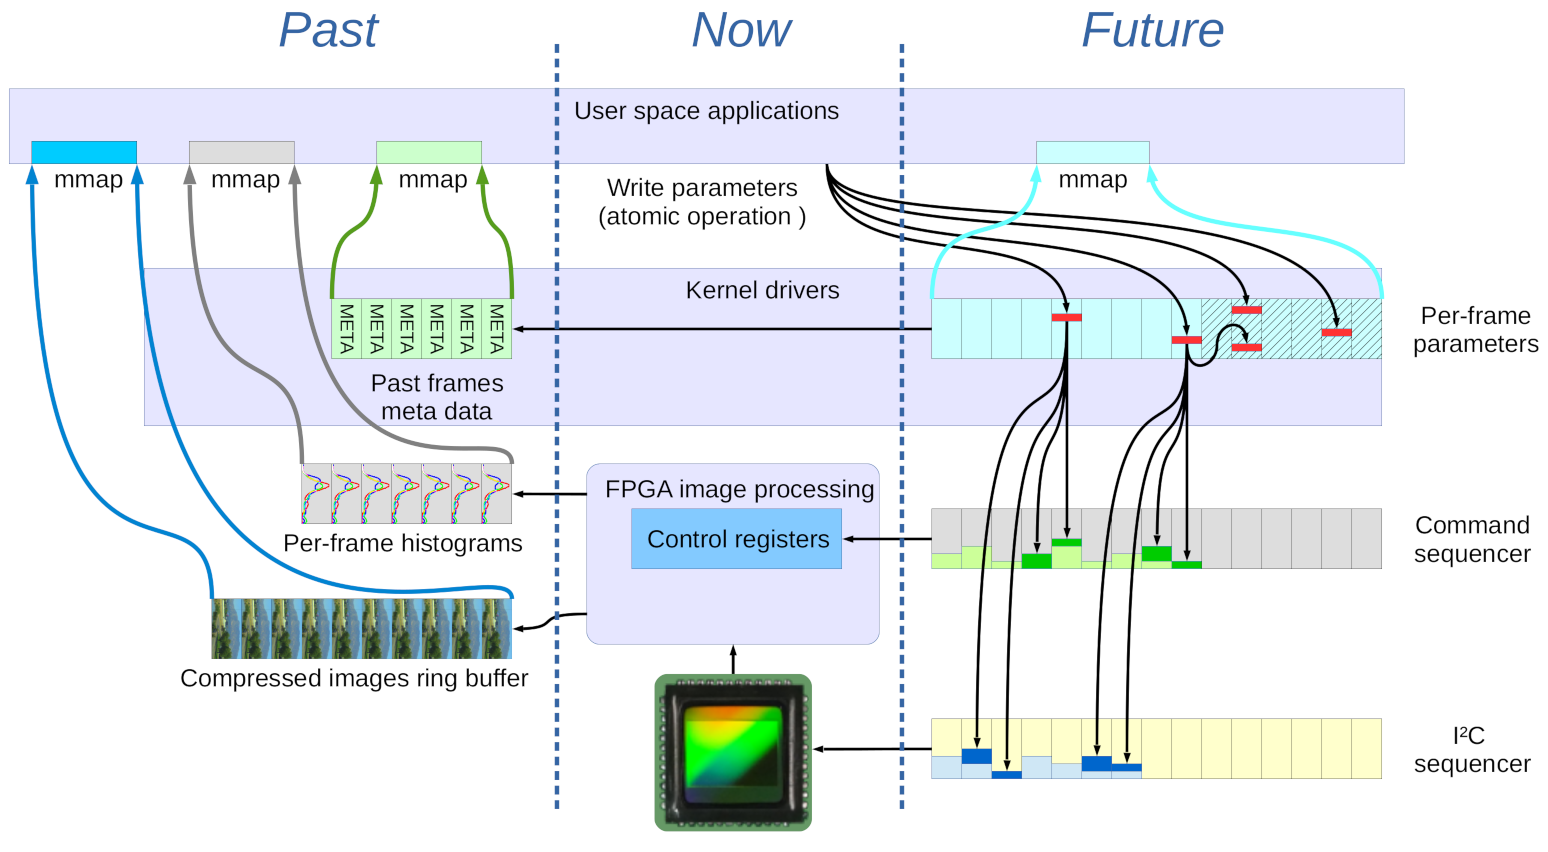 Fig 2. Interaction of the image sensor, FPGA, kernel drivers and user space applications